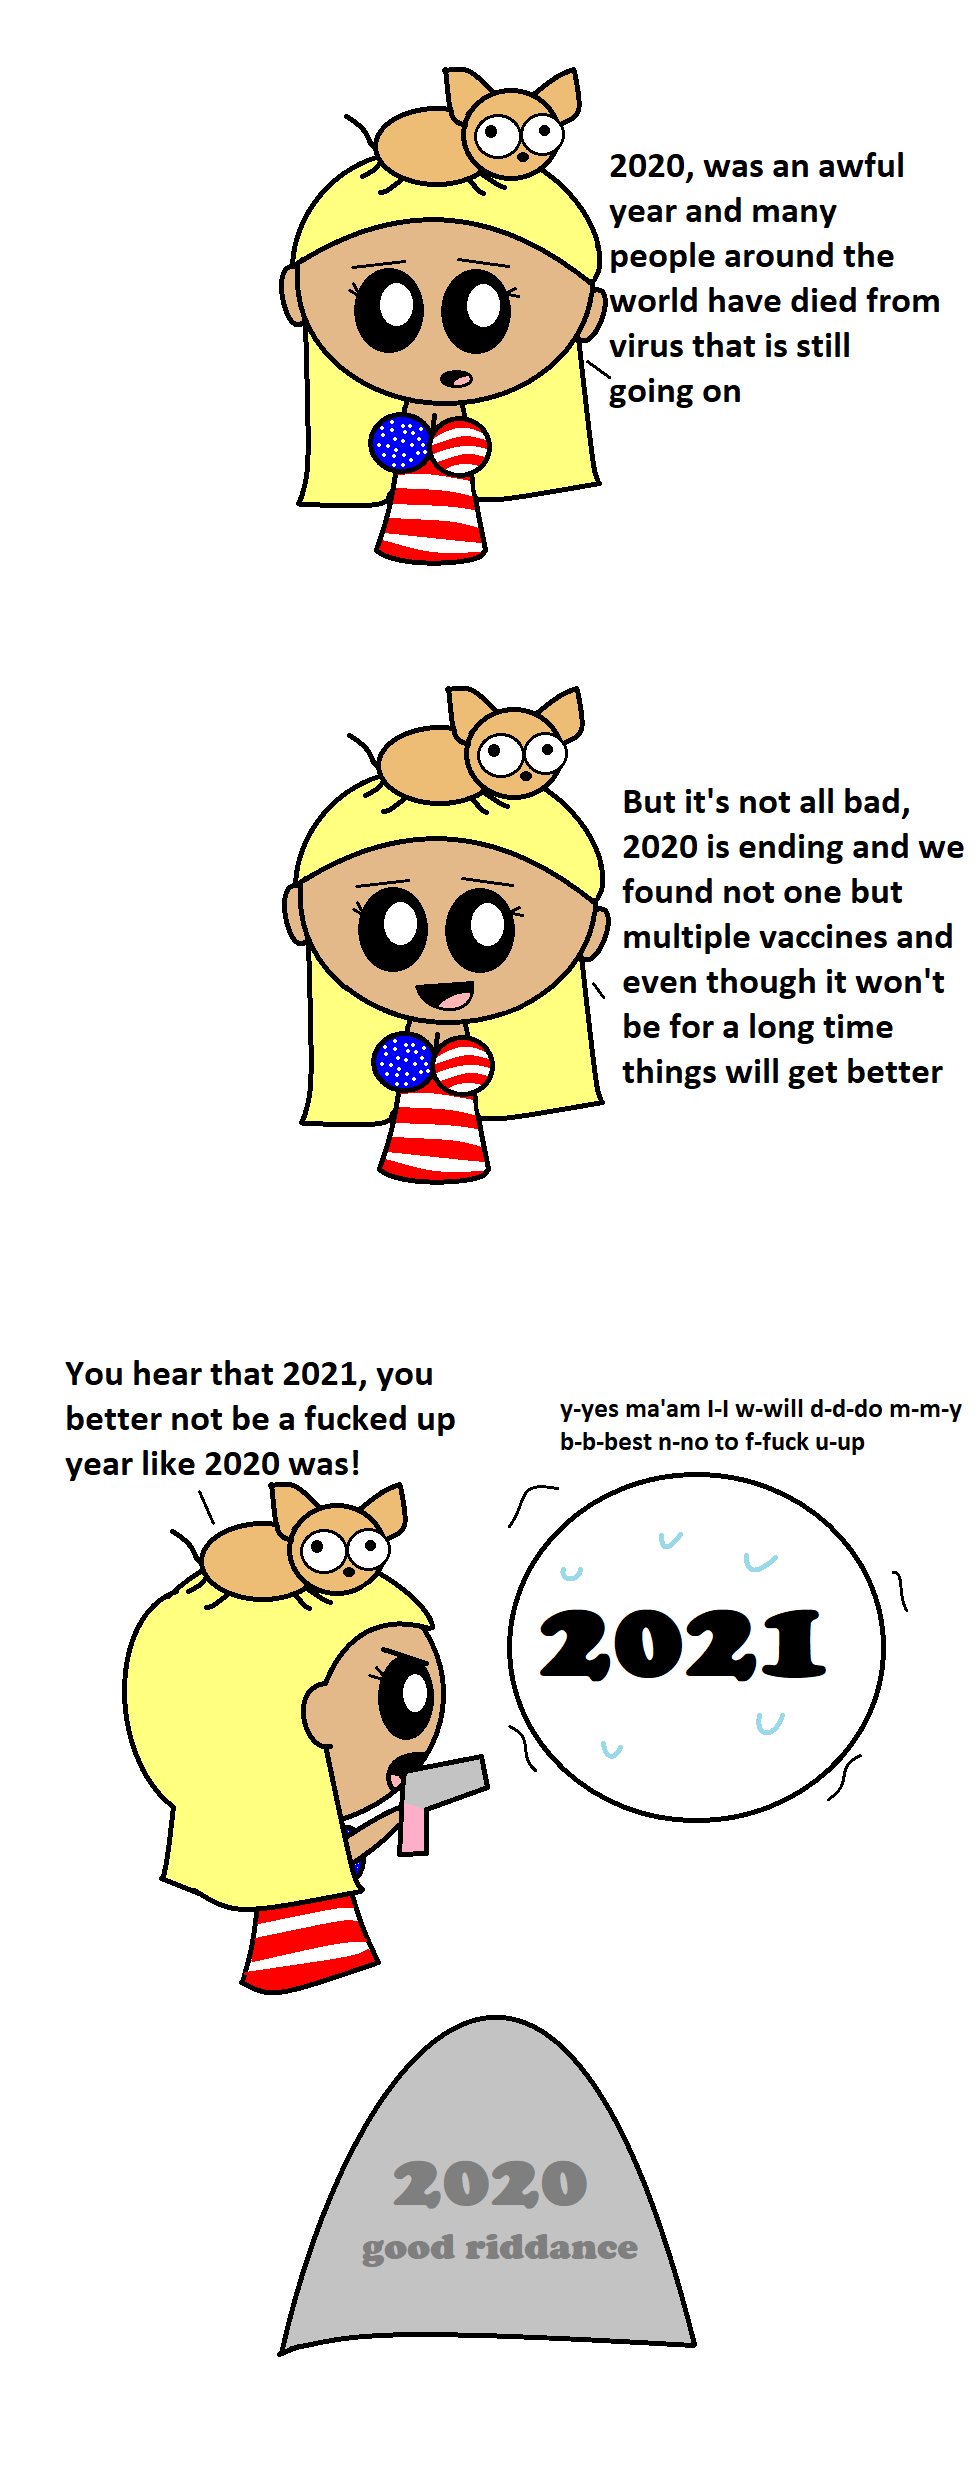 Goodbye 2020 You will not be Missed  satwcomic.com